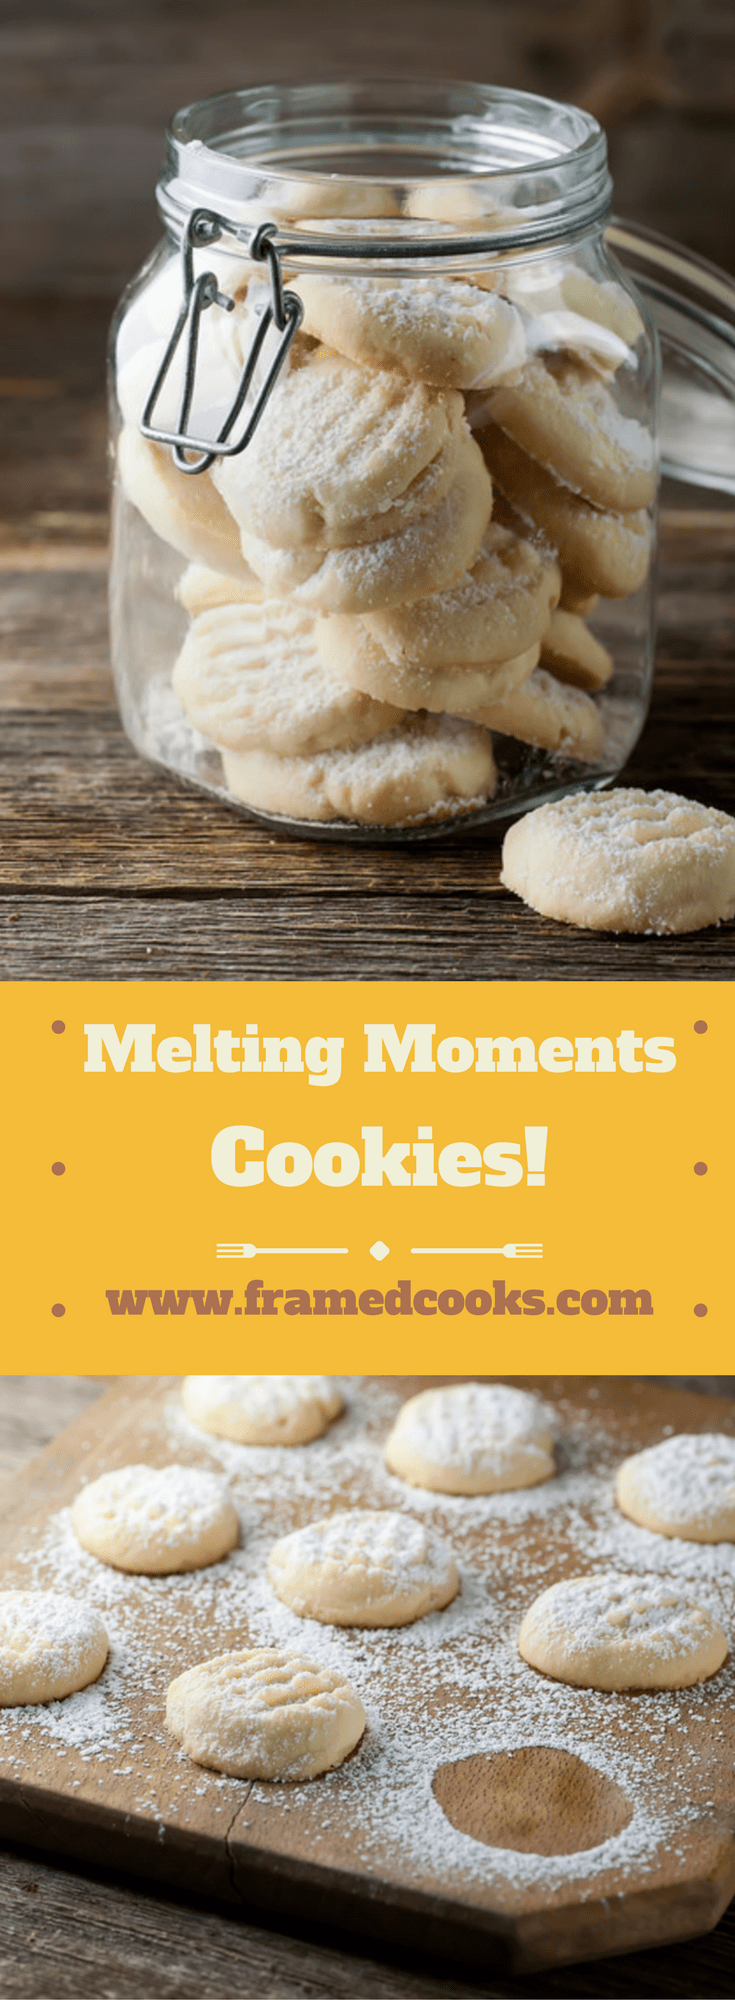 Melting moments cookies are a delightful little sugar cookie guaranteed to melt the heart of the lucky person you bake them for! Here's the easy recipe.